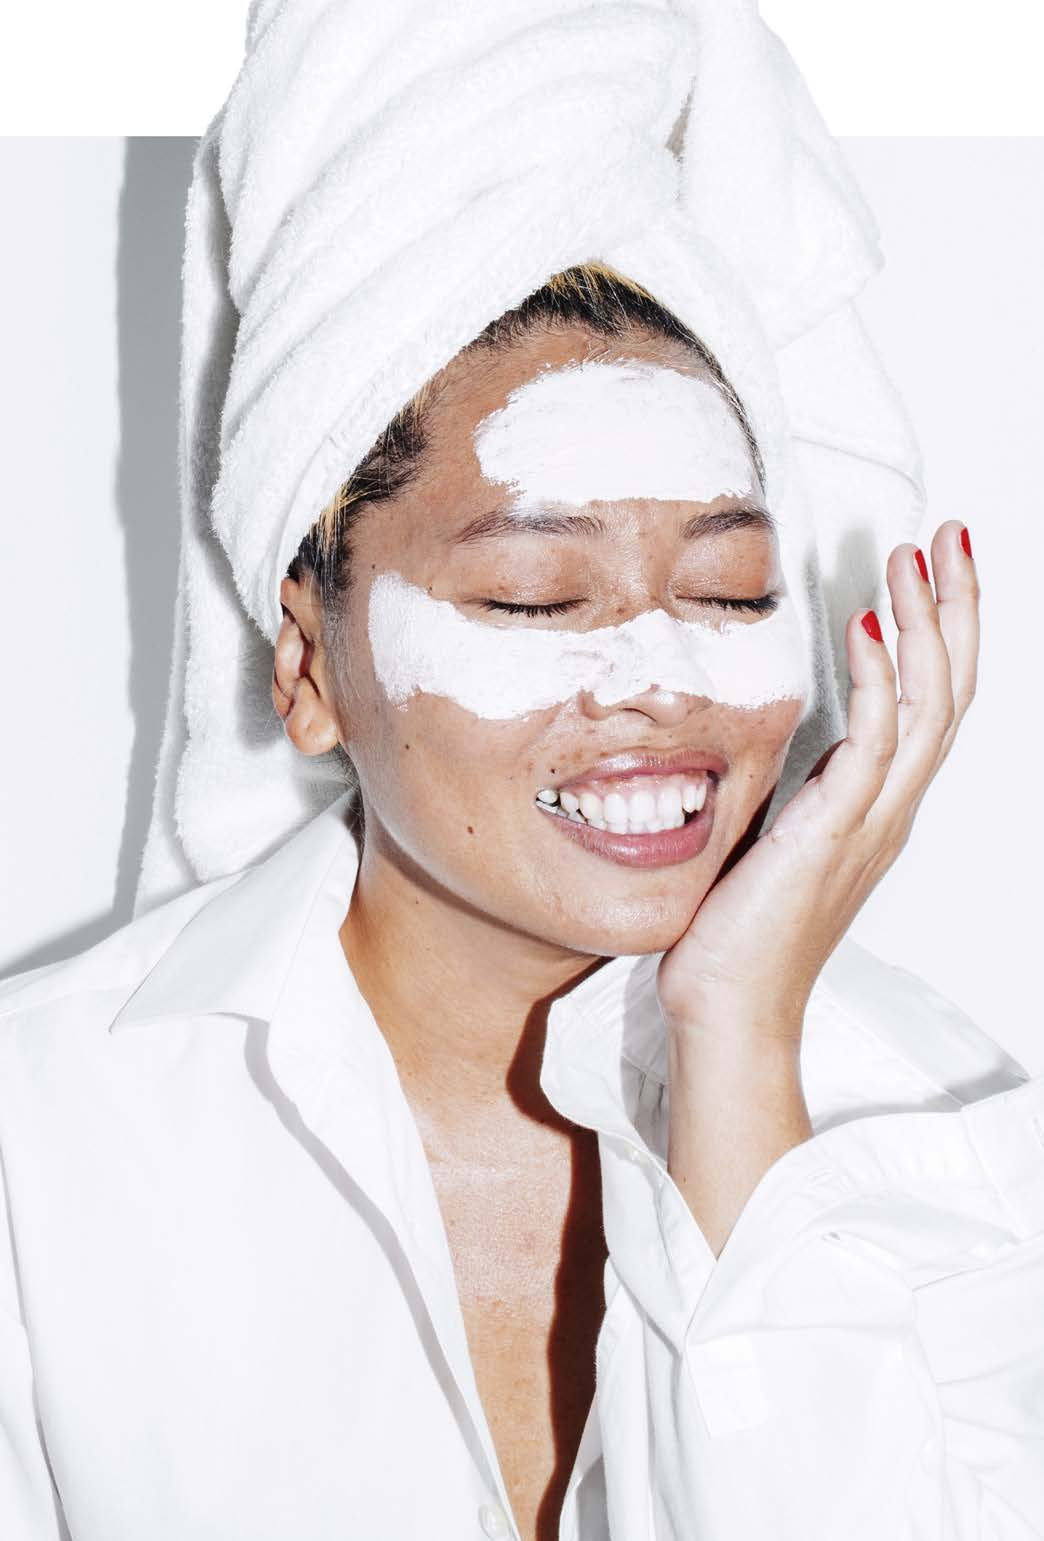 The Ultimate Guide To Exfoliating Your Face